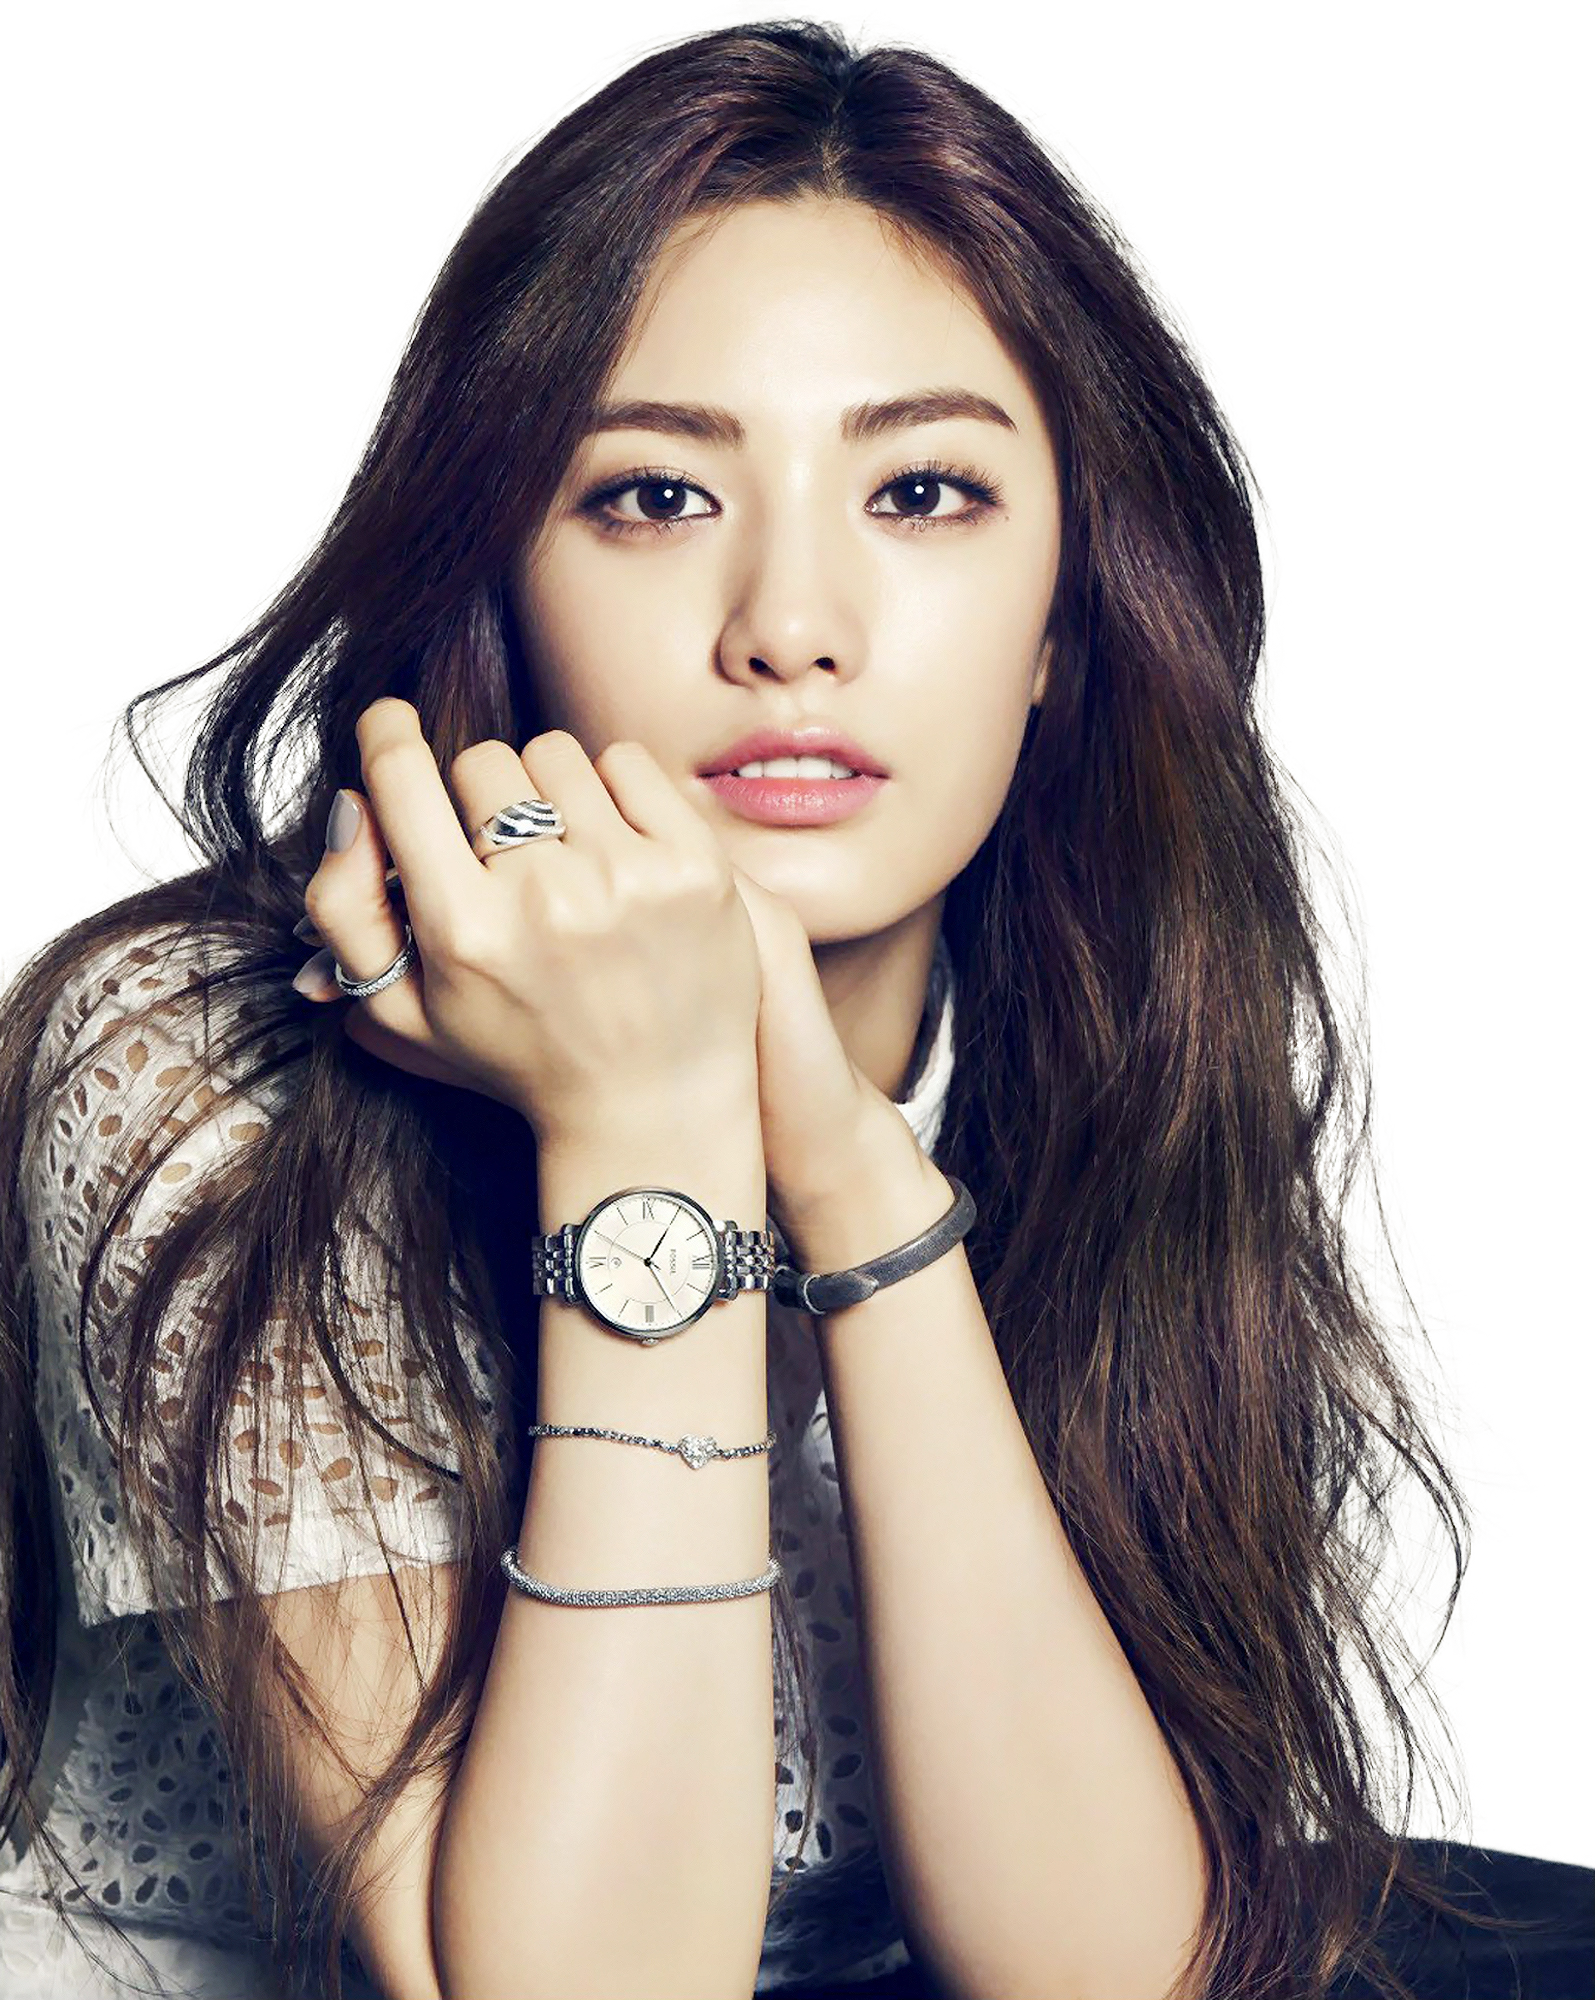 Download Nana After School Wallpaper Gallery 1595x2000